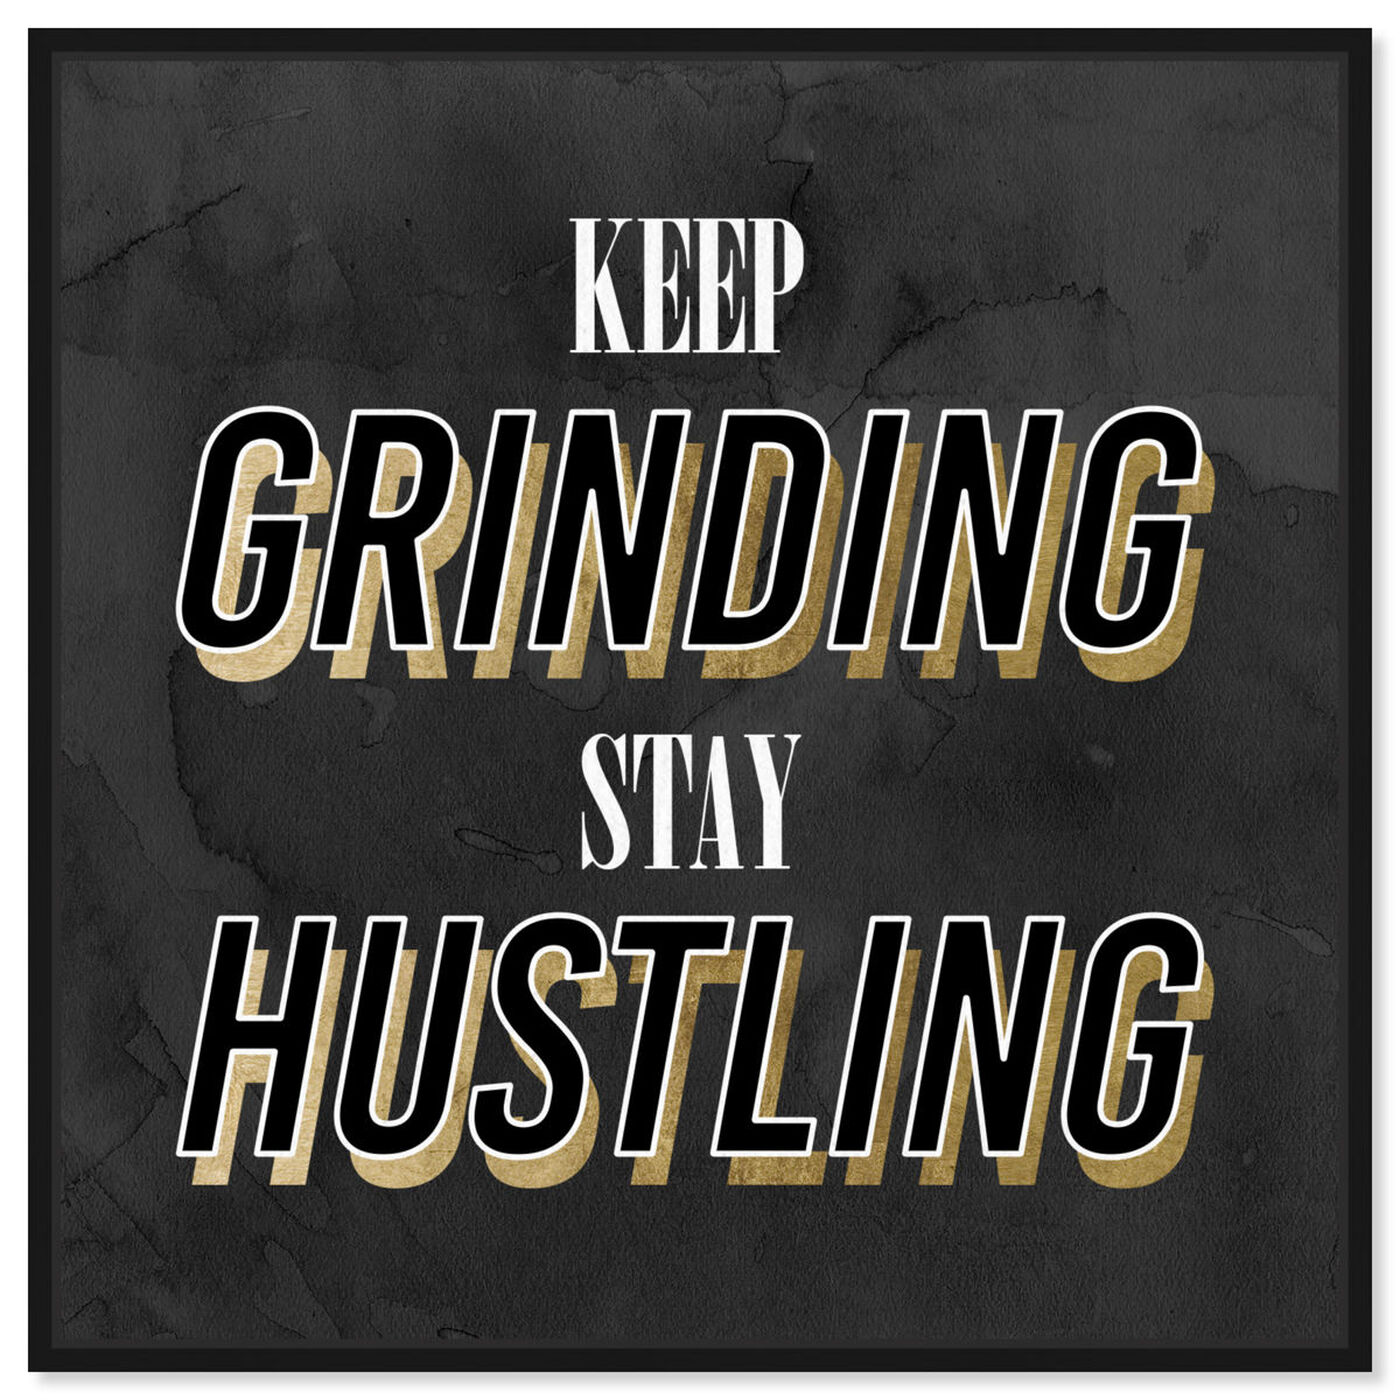 Front view of Stay Hustling featuring typography and quotes and inspirational quotes and sayings art.